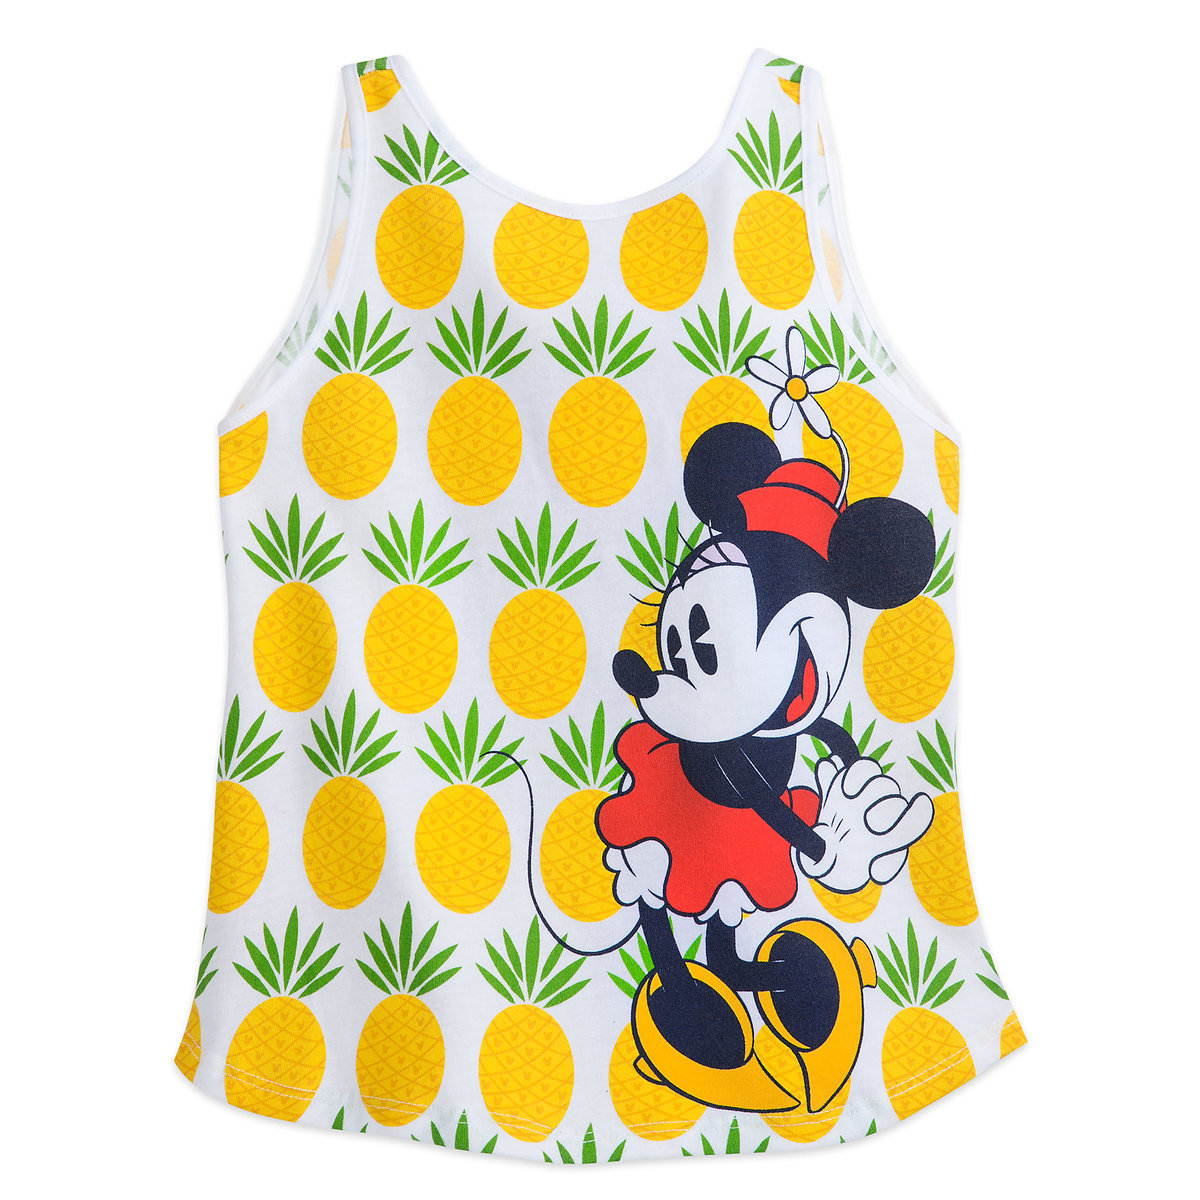 4aba5ab12a9e7 Product Image of Minnie Mouse Pineapple Tank Top for Girls   1